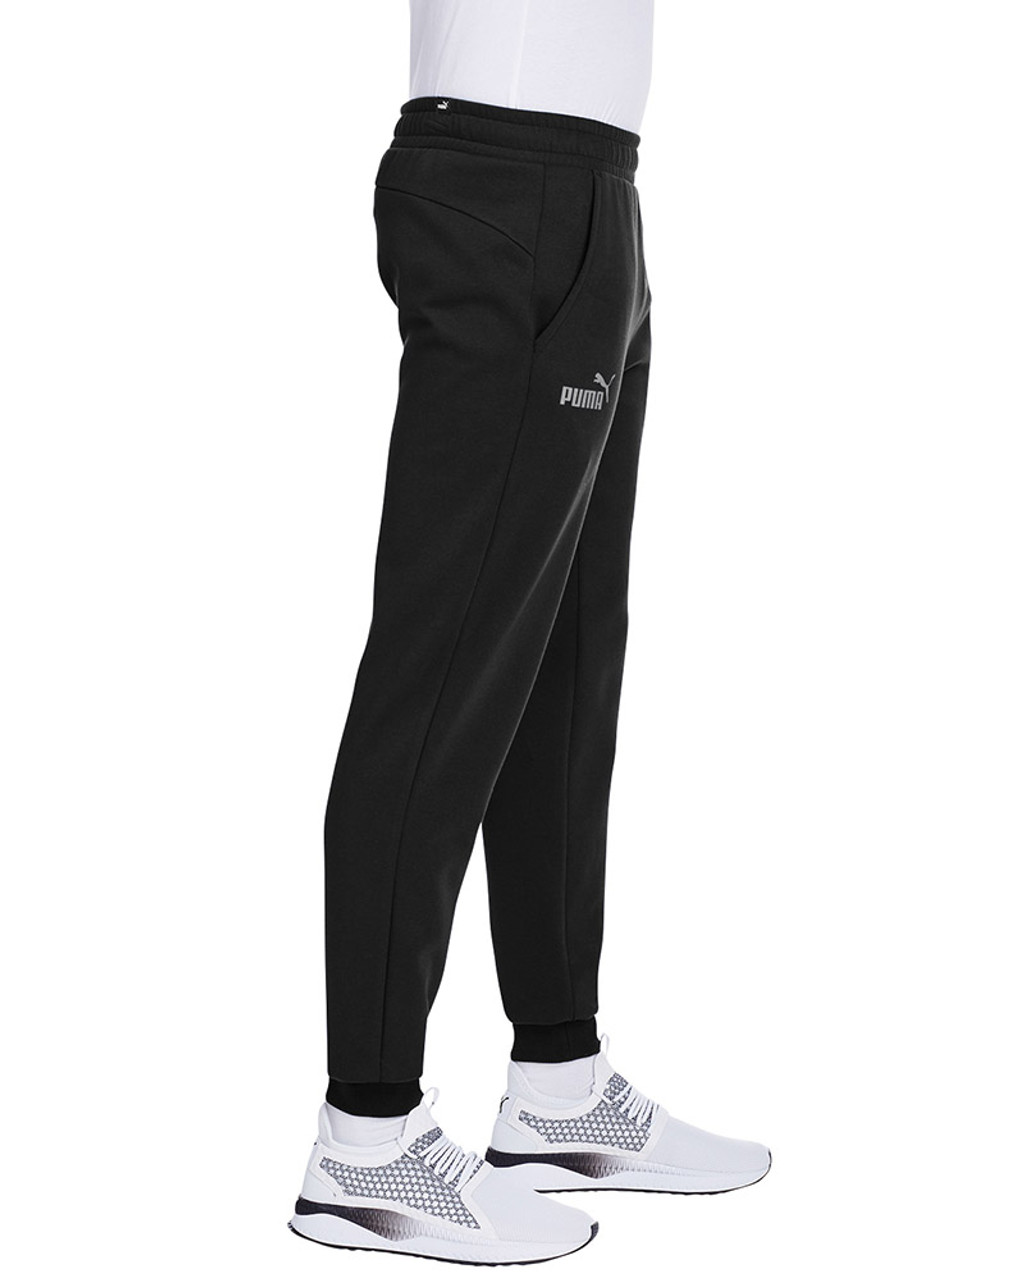 Puma Black/Smoke Pearl - side, 596989 Puma Sport Essential Adult Logo Sweatpant | Blankclothing.ca